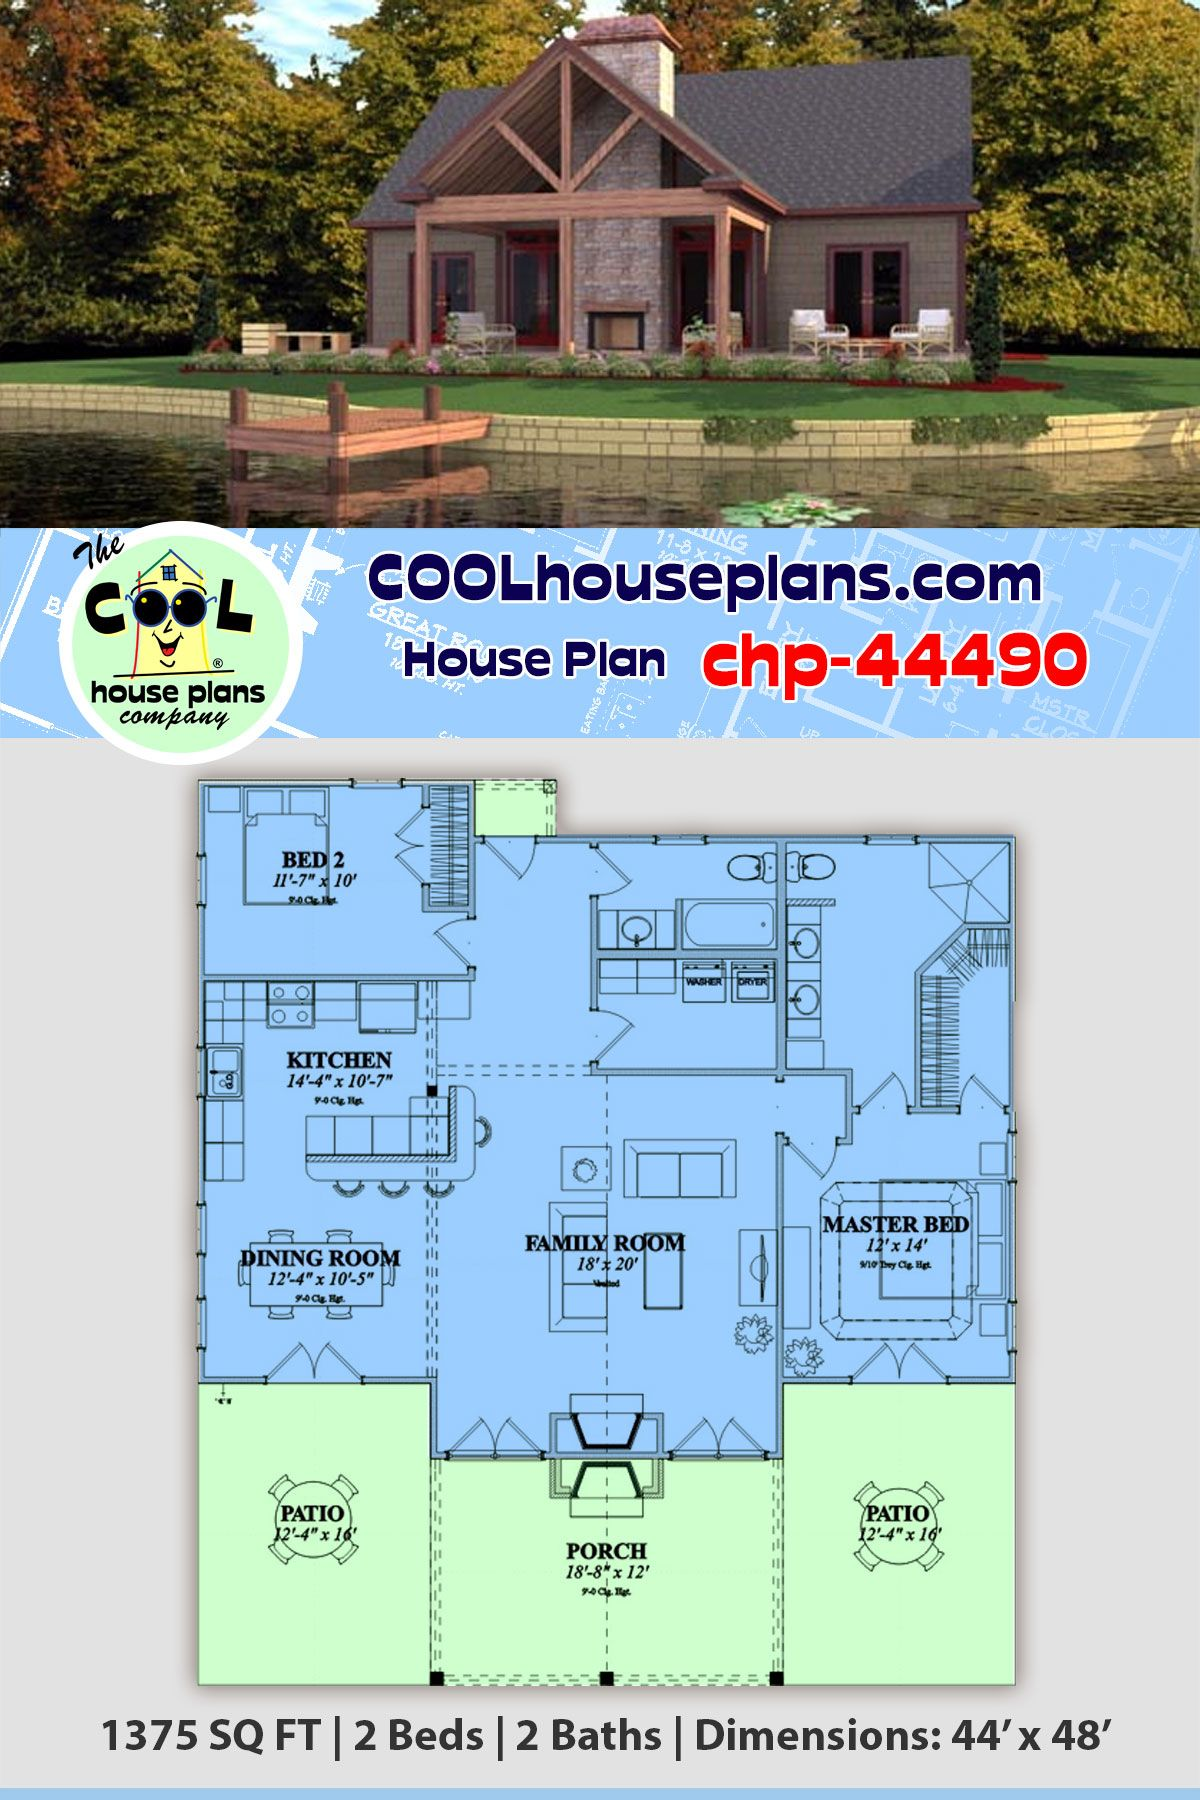 Http Www Coolhouseplans Com Details Html Pid 44490archstyle Cottageordercode Pt102 Vacation House Plans Bungalow Style House Plans Lake House Plans